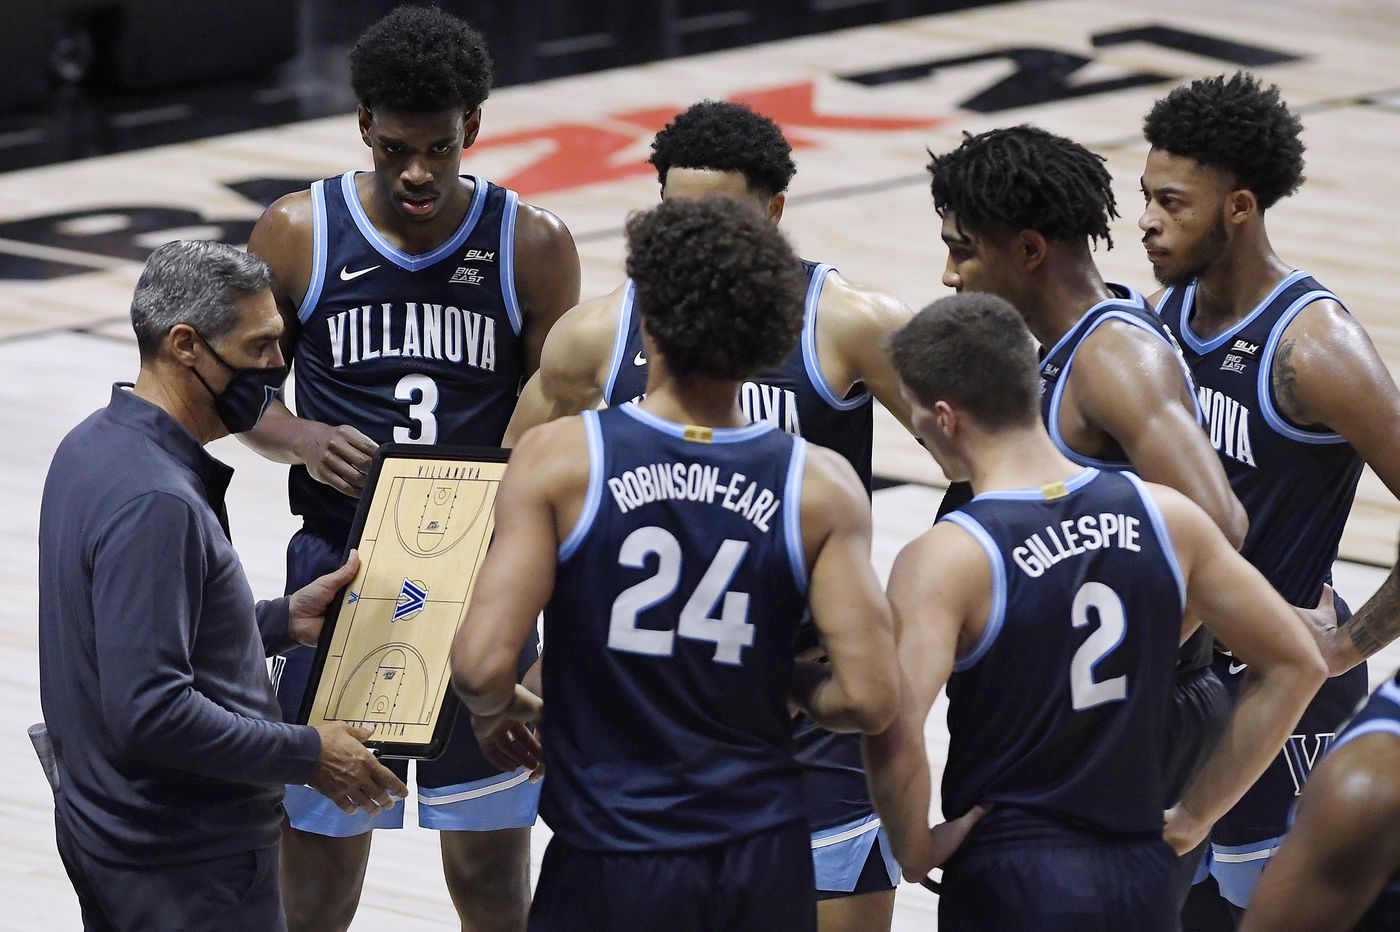 Villanova schedules game against Hartford for Tuesday at 'Bubbleville,' replacing postponed contest vs. St. Joseph's